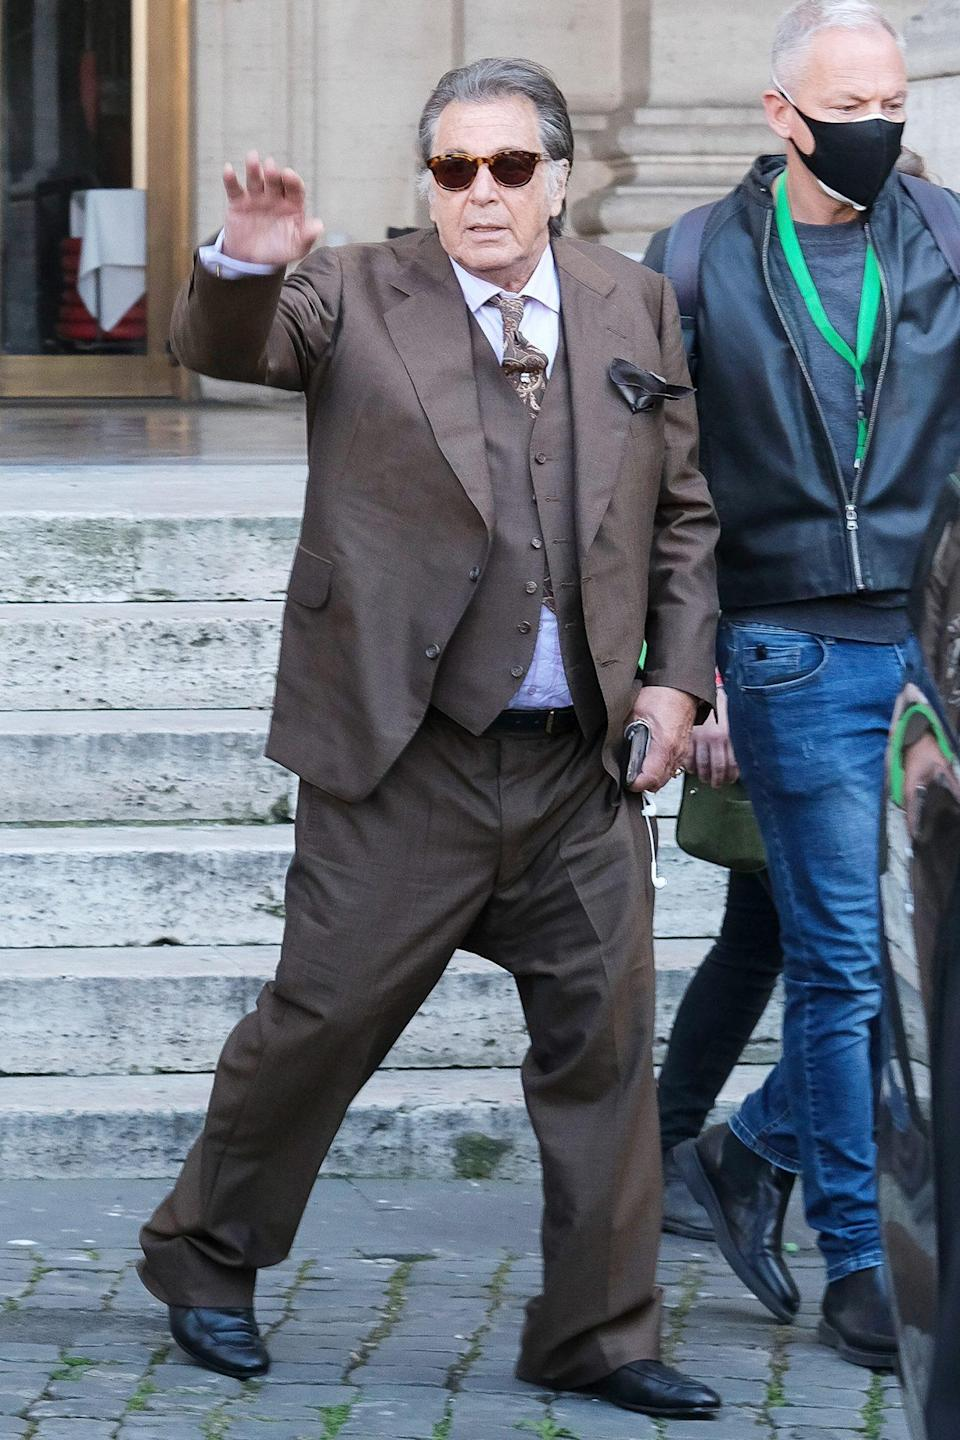 <p>Al Pacino waves to fans while on the set of <i>House of Gucci </i>on Monday in Milan. </p>